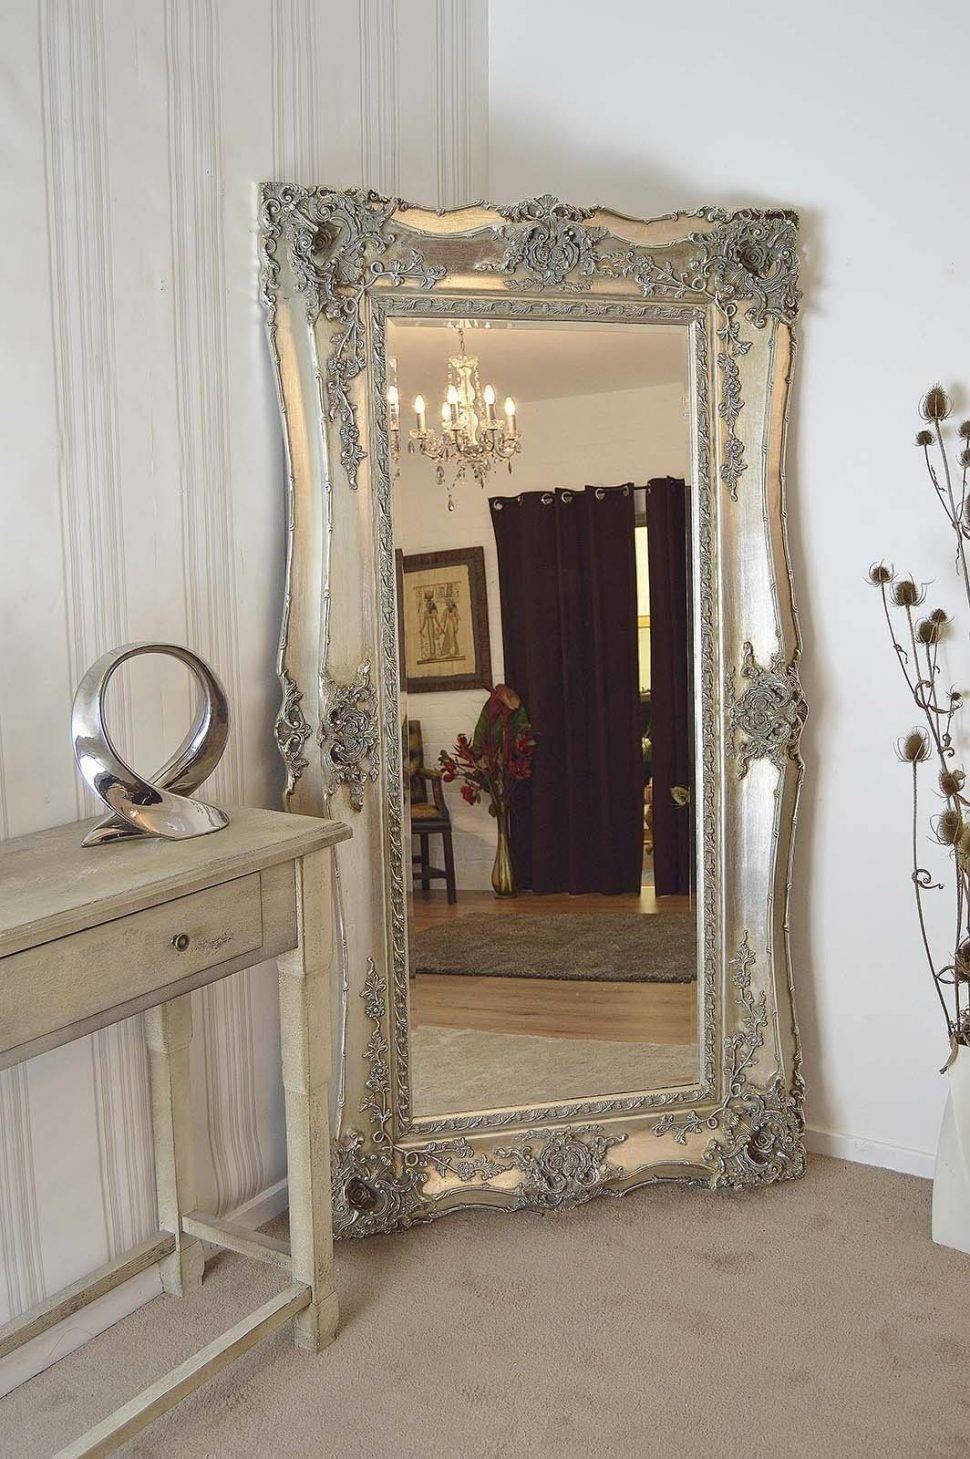 Bathrooms Design : White Wall Mirror Cheap Standing Mirror Round for Large Standing Mirrors (Image 1 of 15)